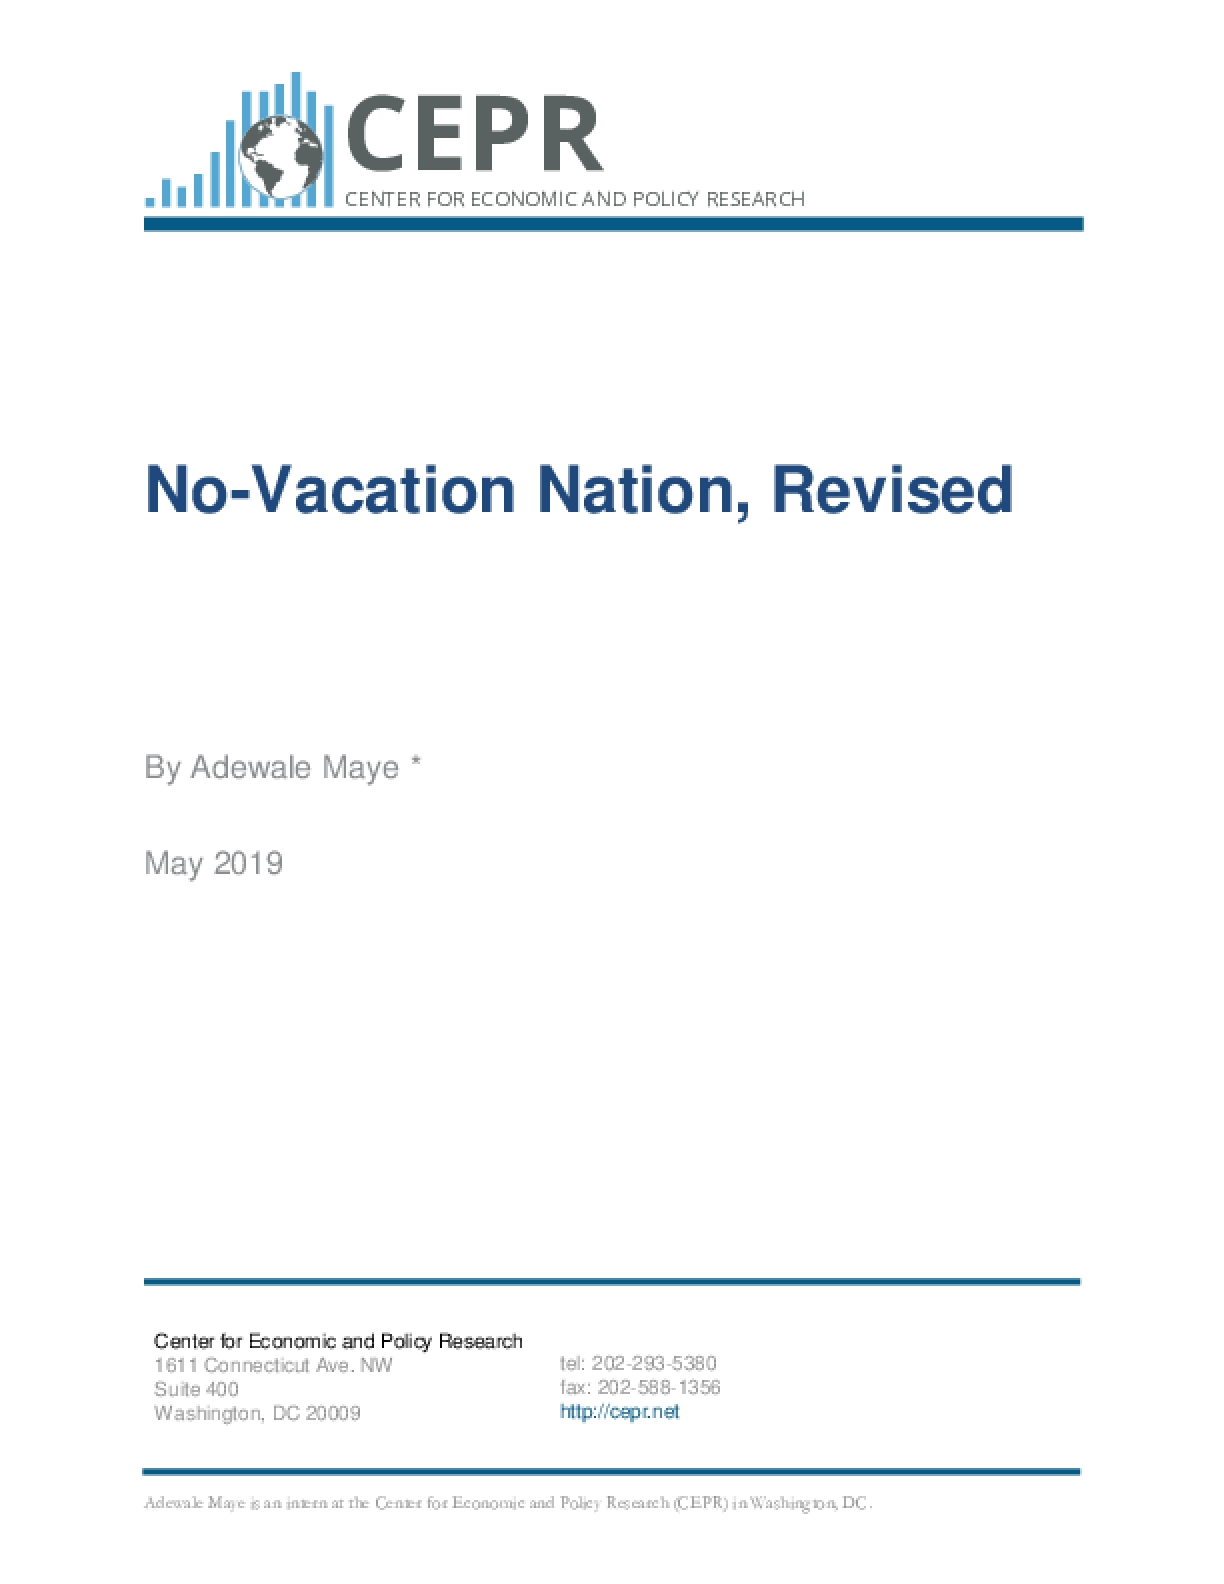 No-Vacation Nation, Revised